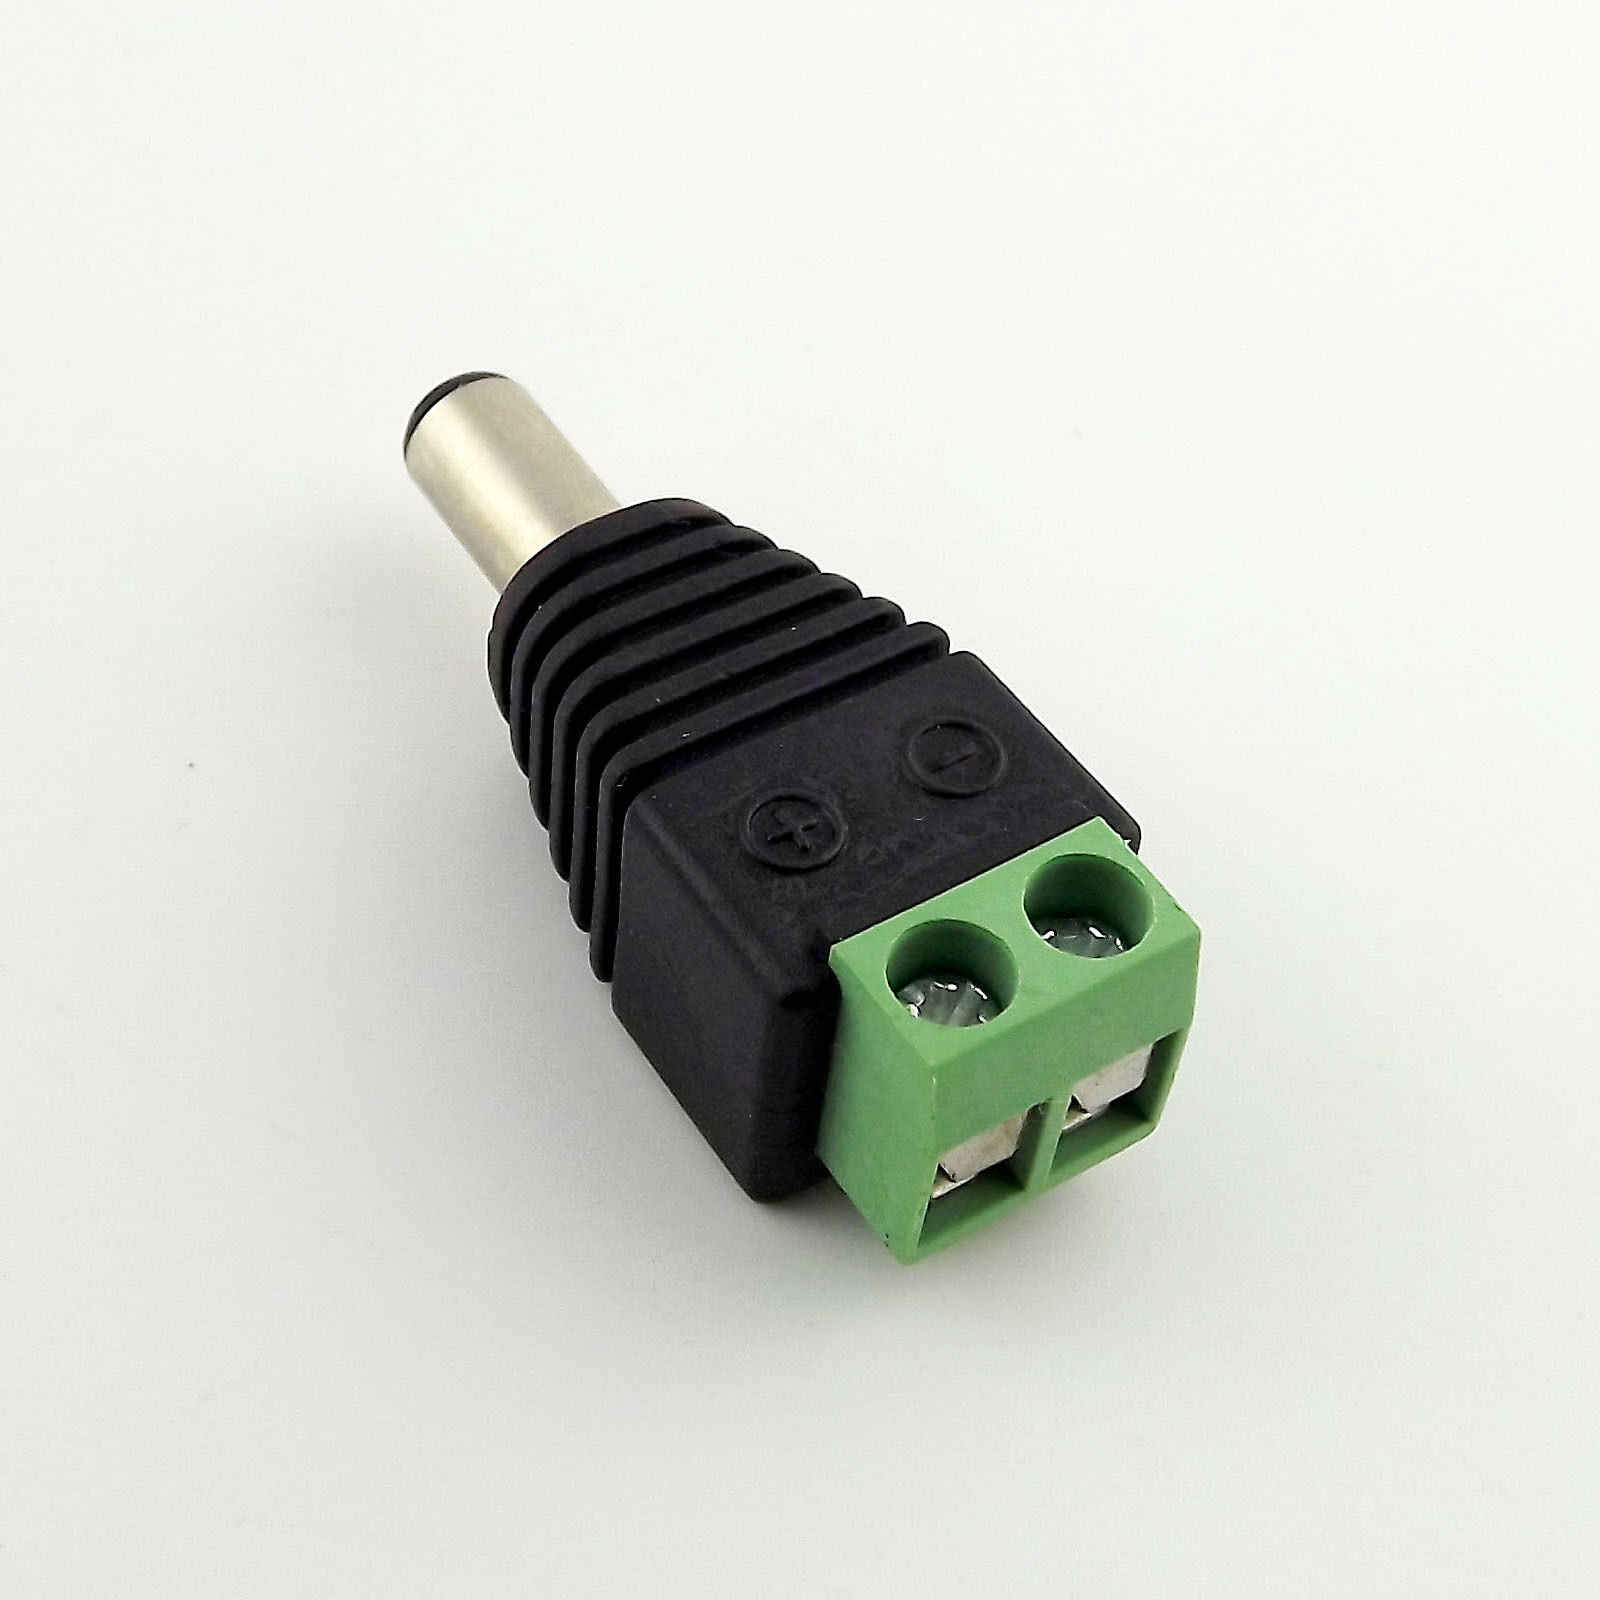 1x CCTV DC Balun 5.5mm x 2.1mm Male LED DC Power Plug Camera Adapter Connector